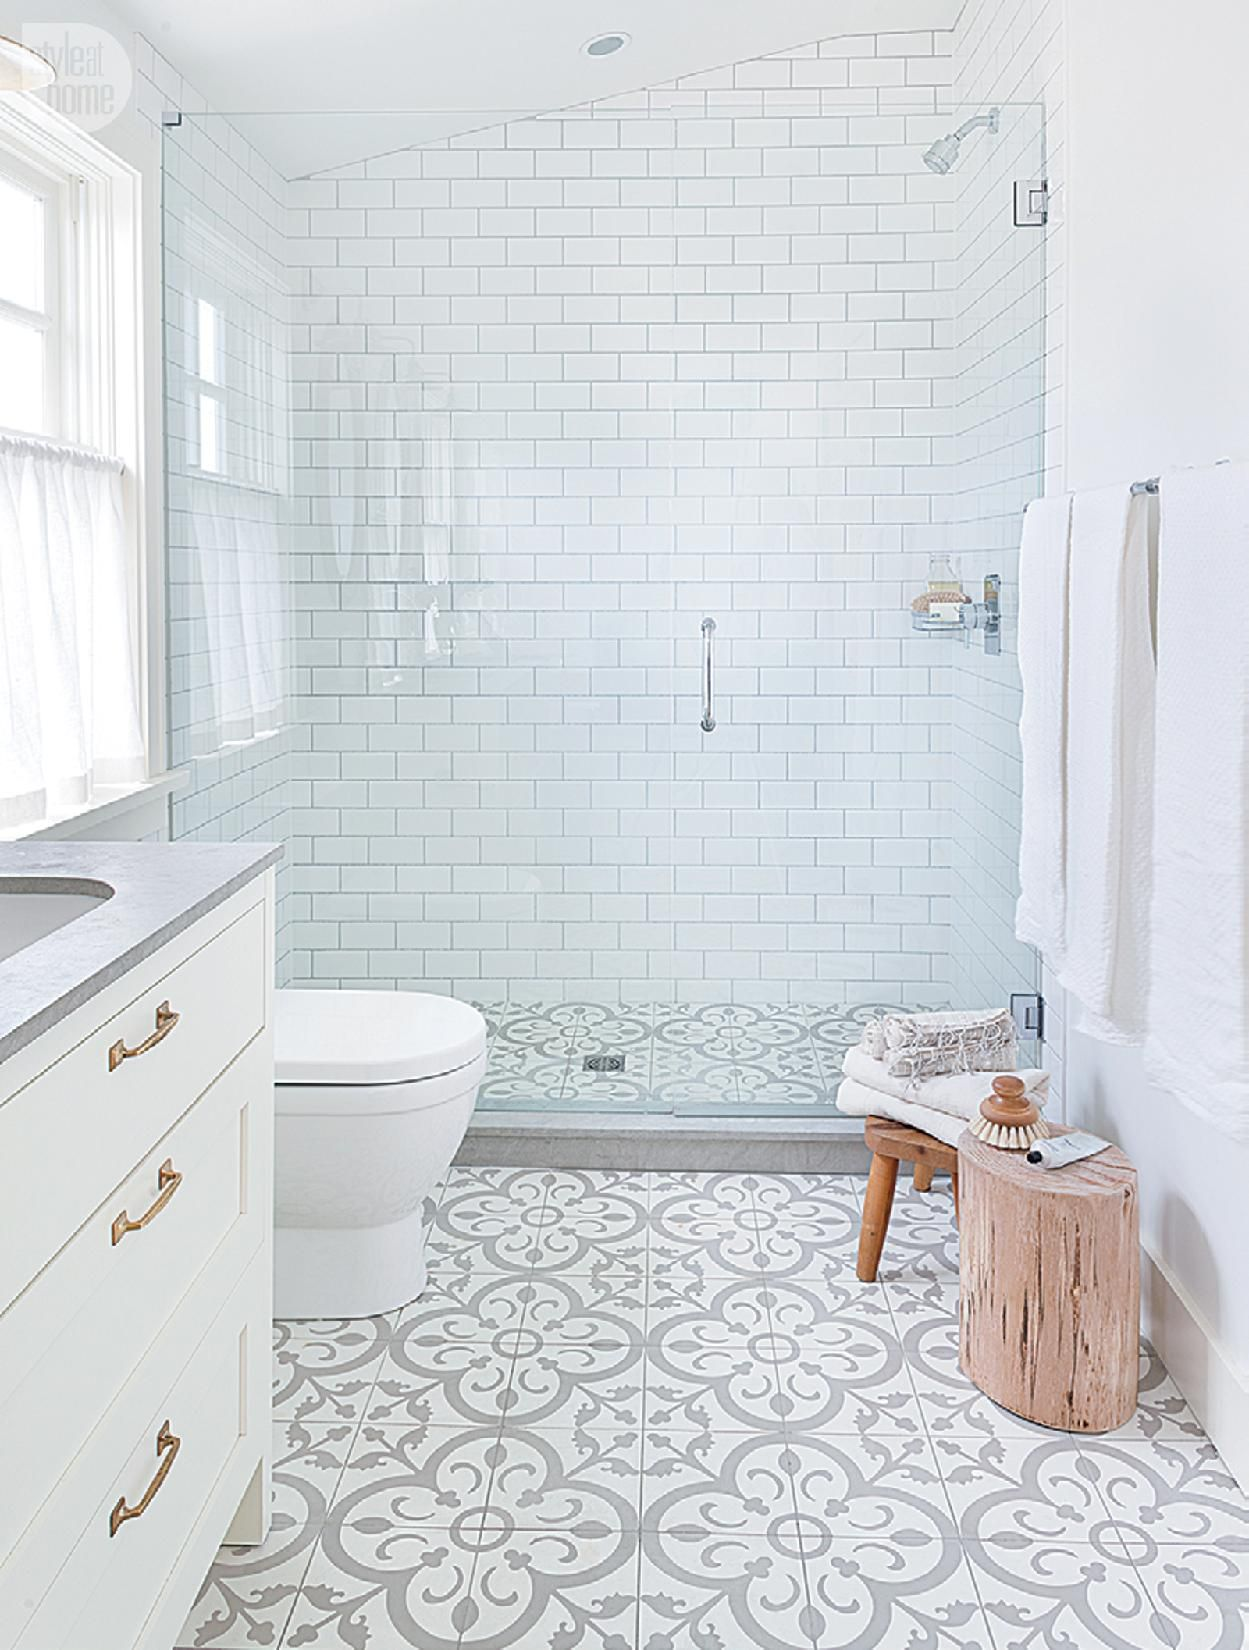 House tour: Modern eclectic family home | Pinterest | Shower ...